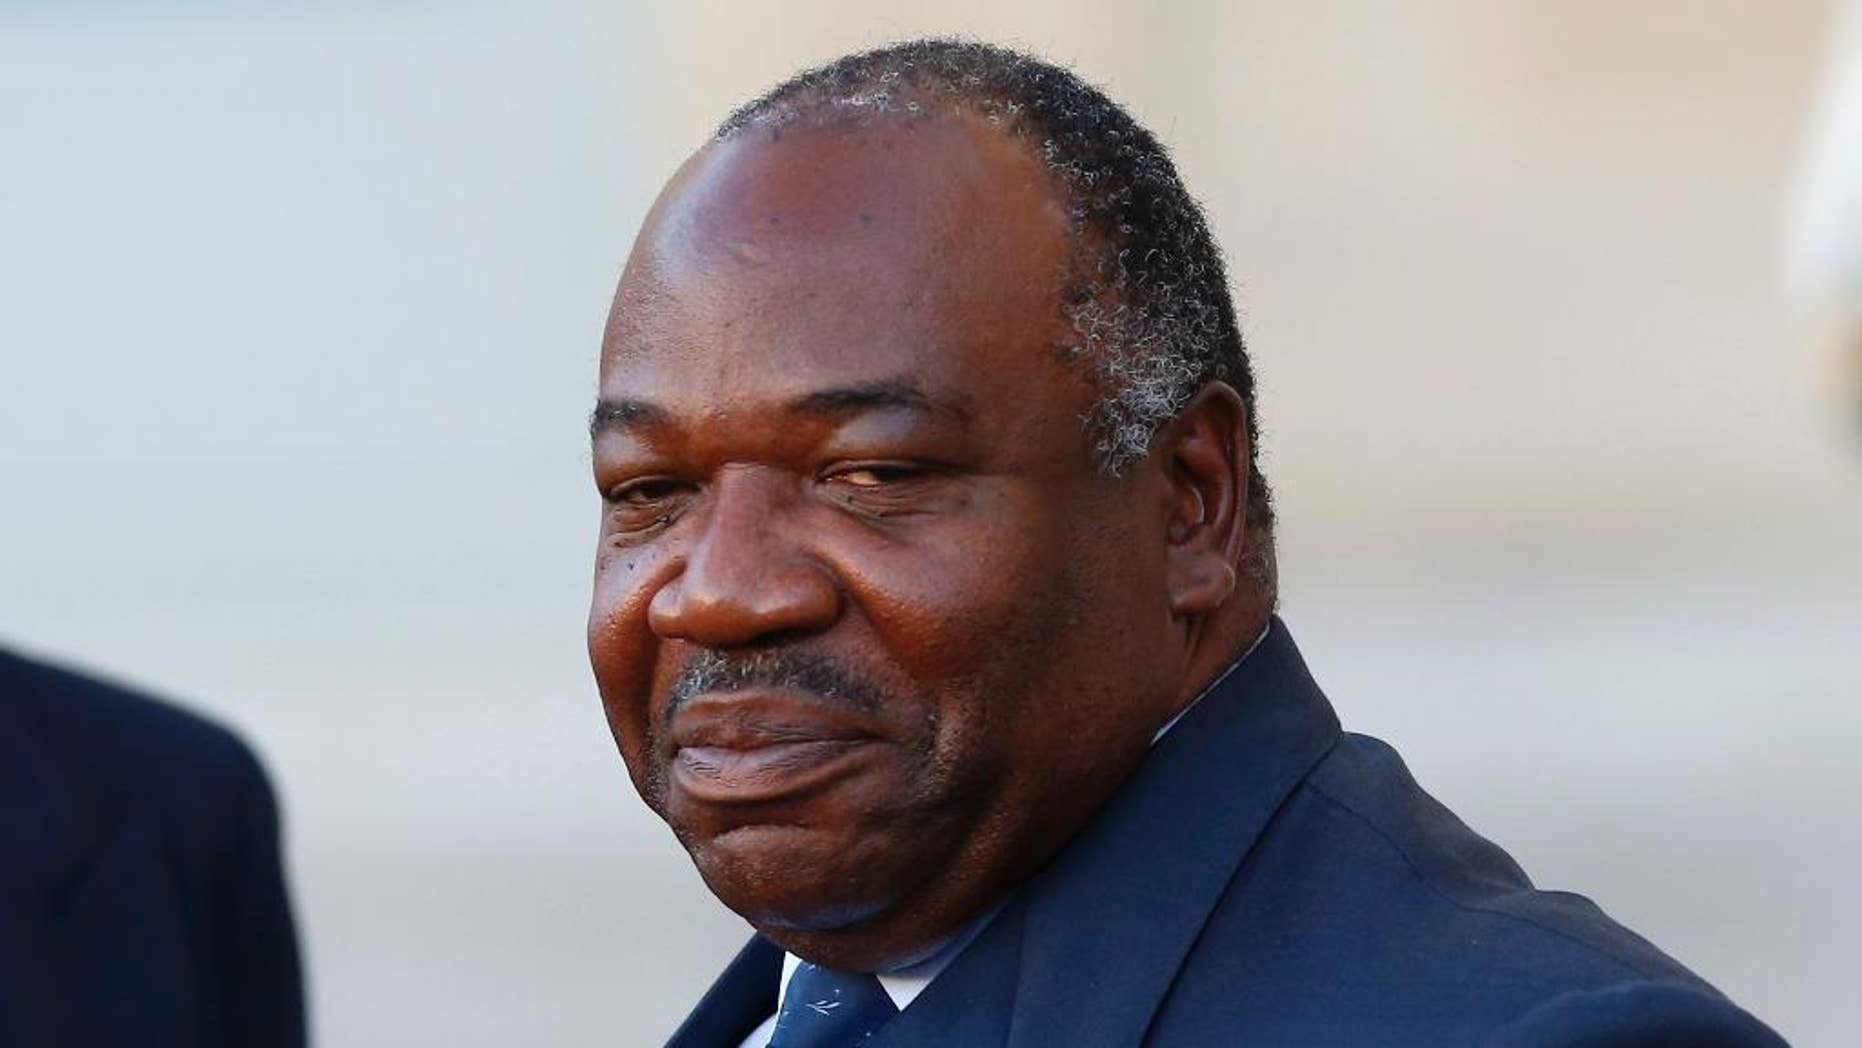 FILE - In this Tuesday, Nov. 10, 2015 file photo, Gabon's President Ali Bongo Ondimba leaves the Elysee Palace after a meeting with French President Francois Hollande as part of preparation of the upcoming COP21 Climate Conference in Paris, France. Gabon's constitutional court upheld incumbent President Bongo's  victory in last month's presidential election early Saturday, Sept. 24, 2016, raising fears of continued unrest as the Bongo family extended its political dynasty of nearly half a century in the oil-rich country. (AP Photo/Francois Mori, File)